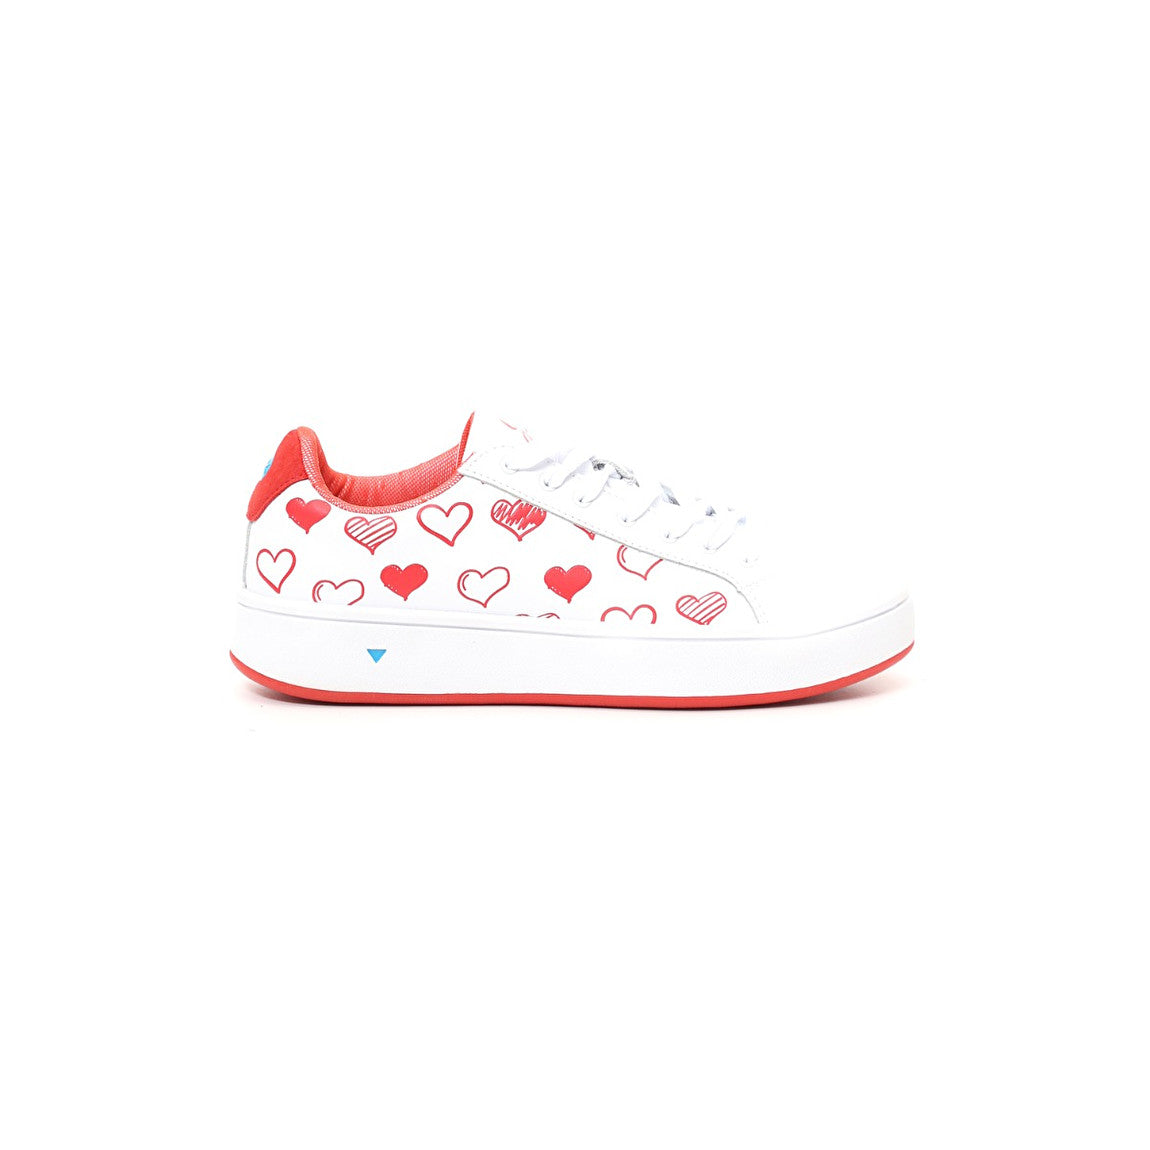 Sneakers G-STEP in pelle bianca e cuore rosso - GABS